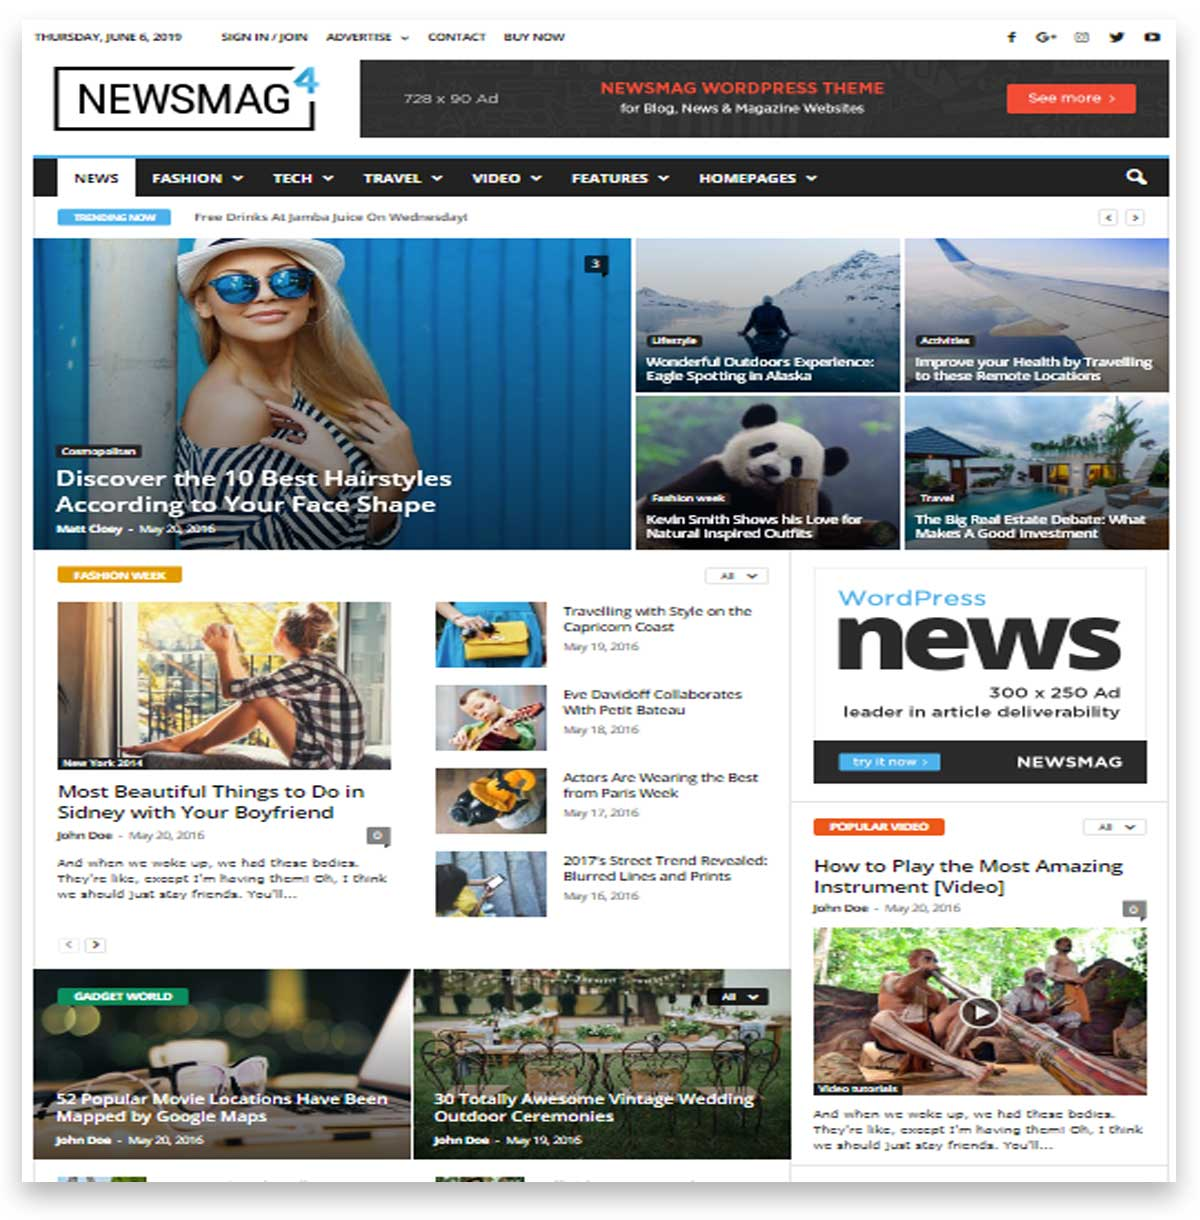 Newsmag - News Magazine Newspaper theme